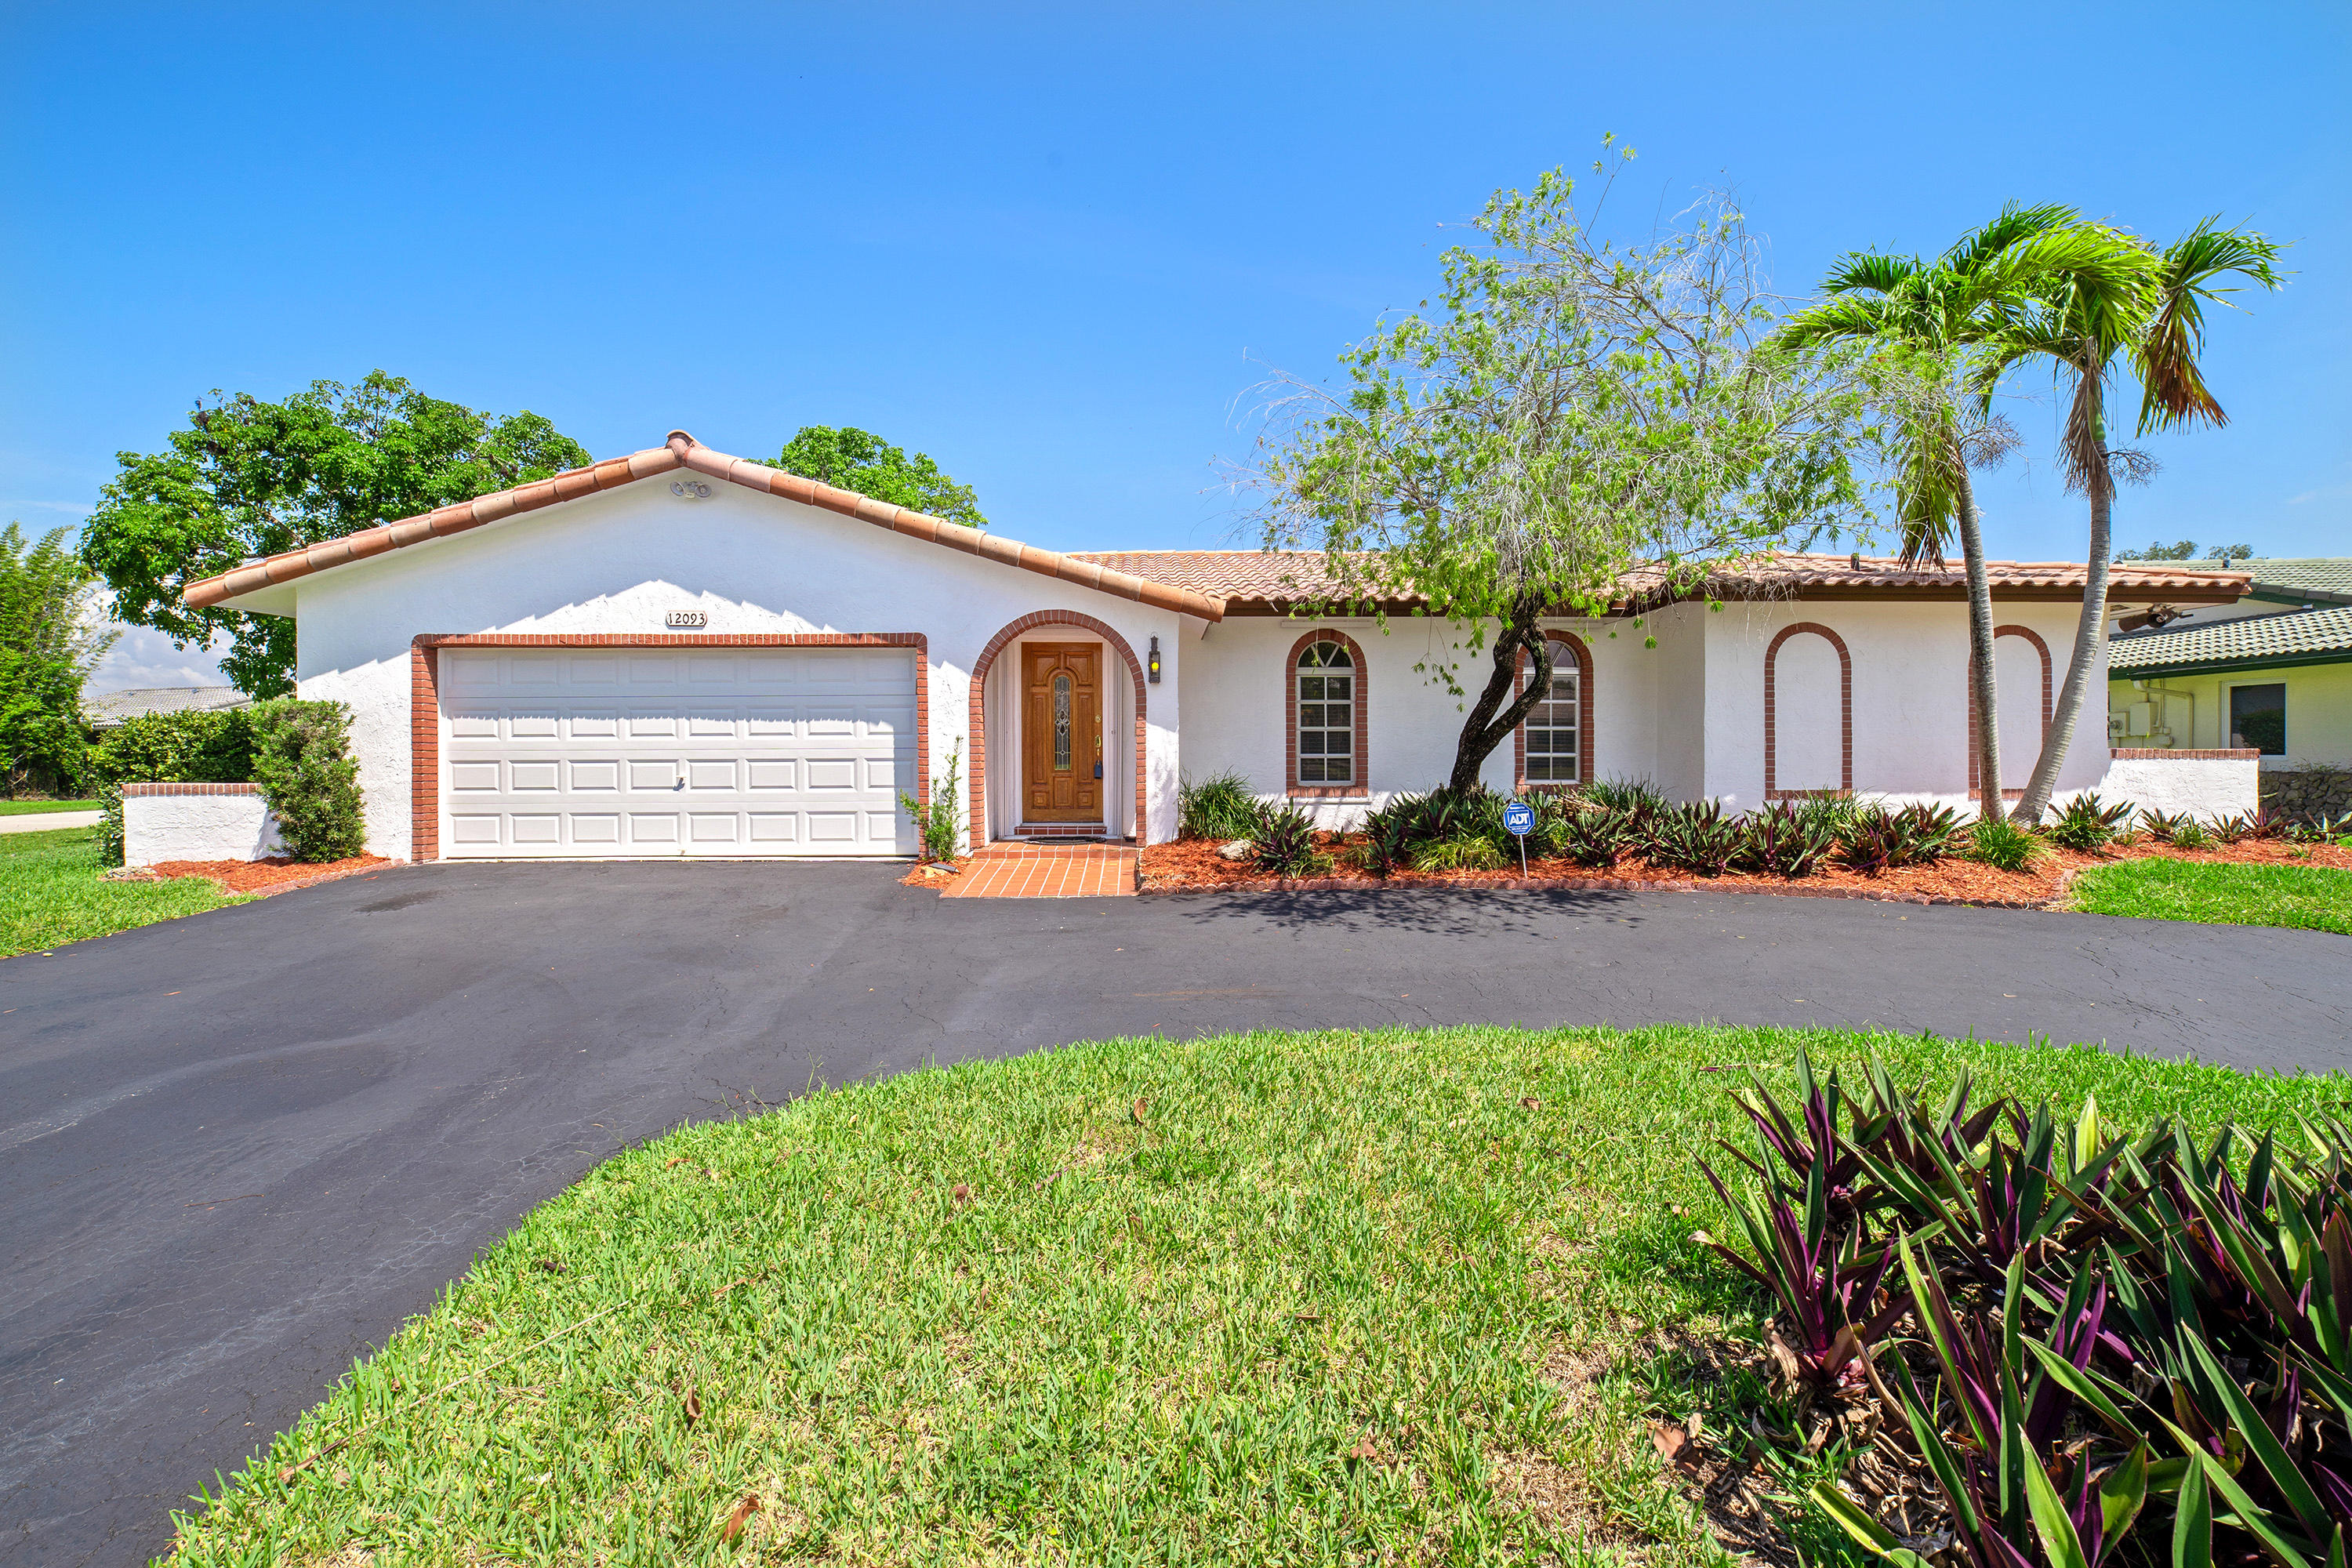 12093 NW 24th Street - Coral Springs, Florida